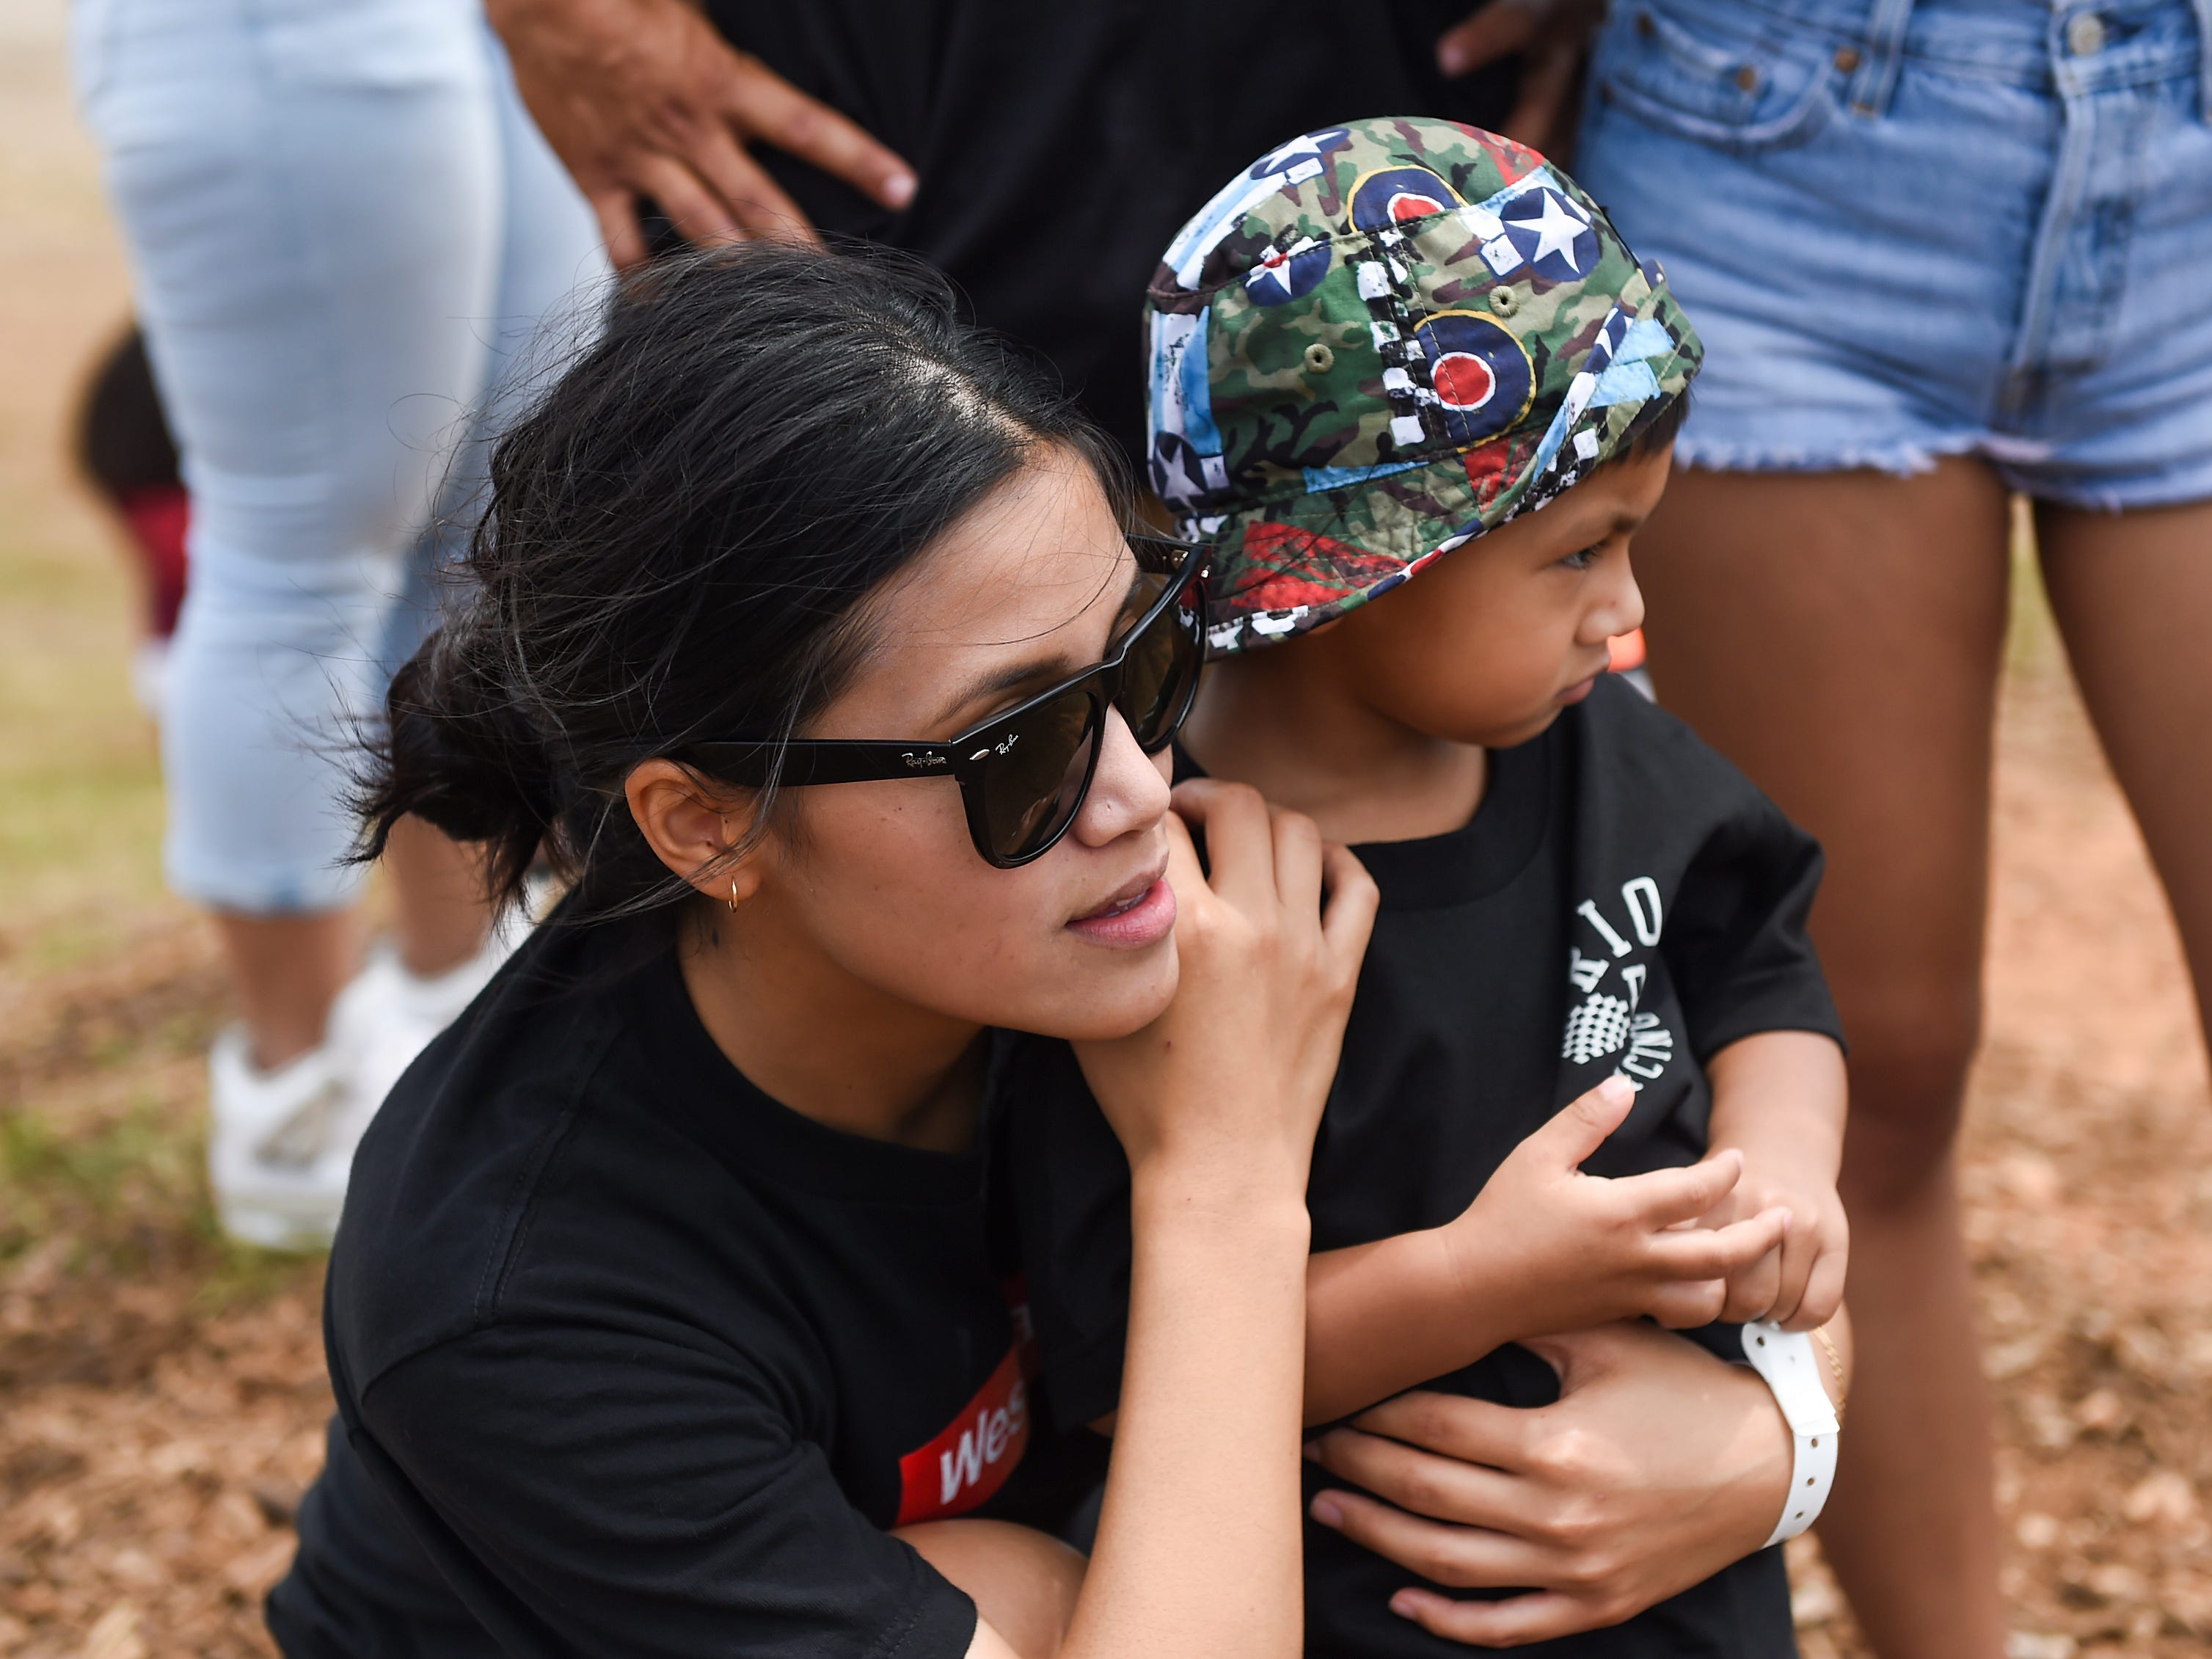 Jonnie Tavares and her son Mateus Tavares, 2, show support for motocross competitor Frank Rios during the 39th Annual APL Smokin' Wheels at the Guam International Raceway in Yigo, April 14, 2019.